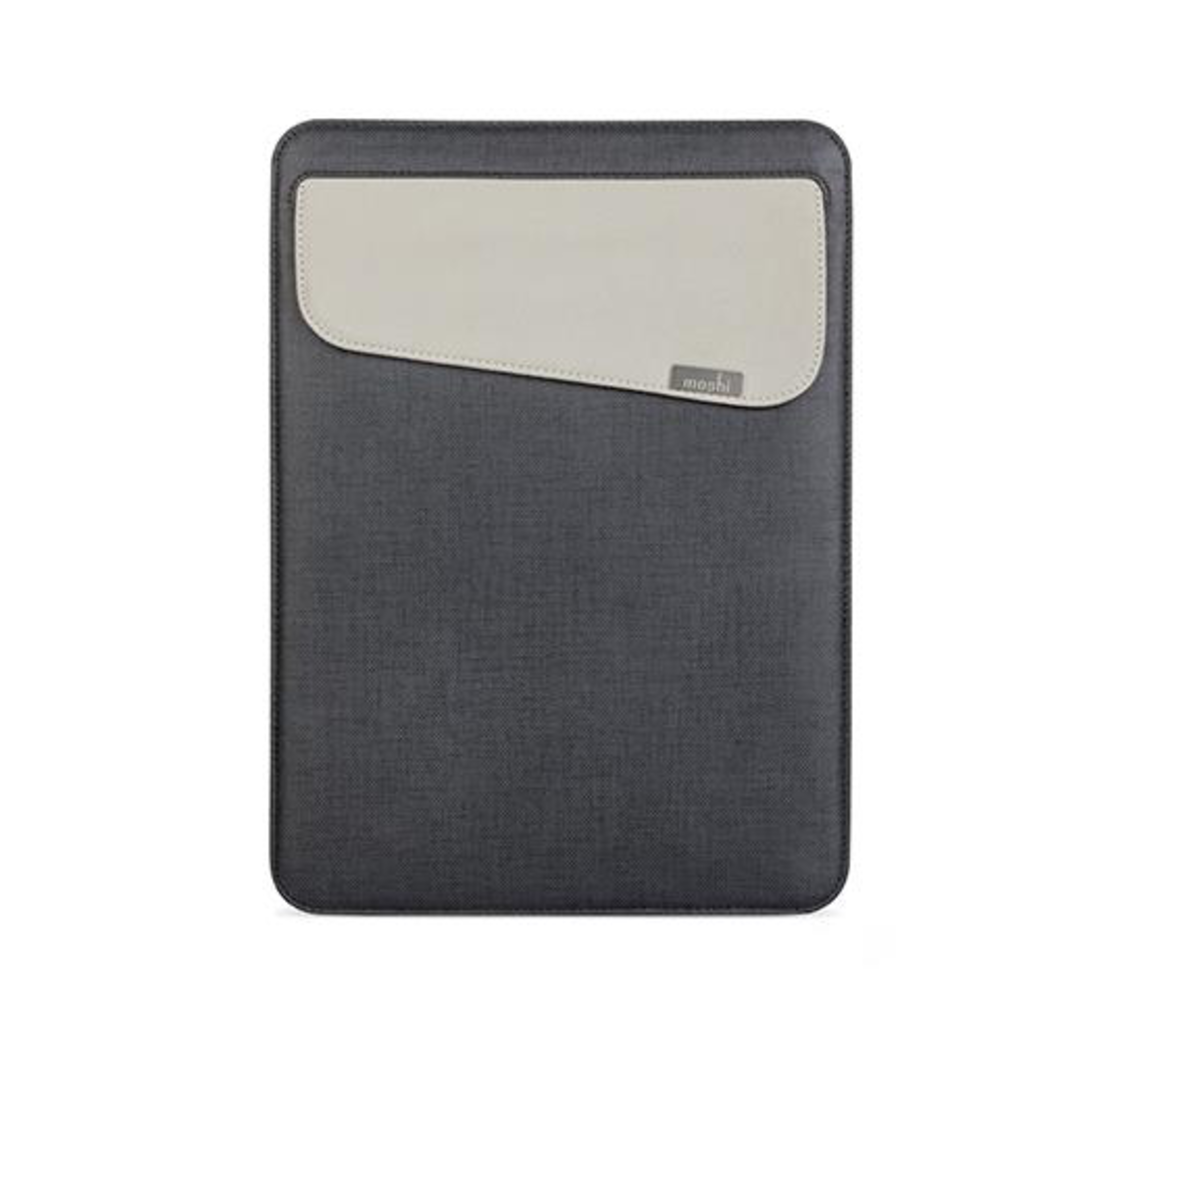 Muse 12 Slim Fit Carrying Case